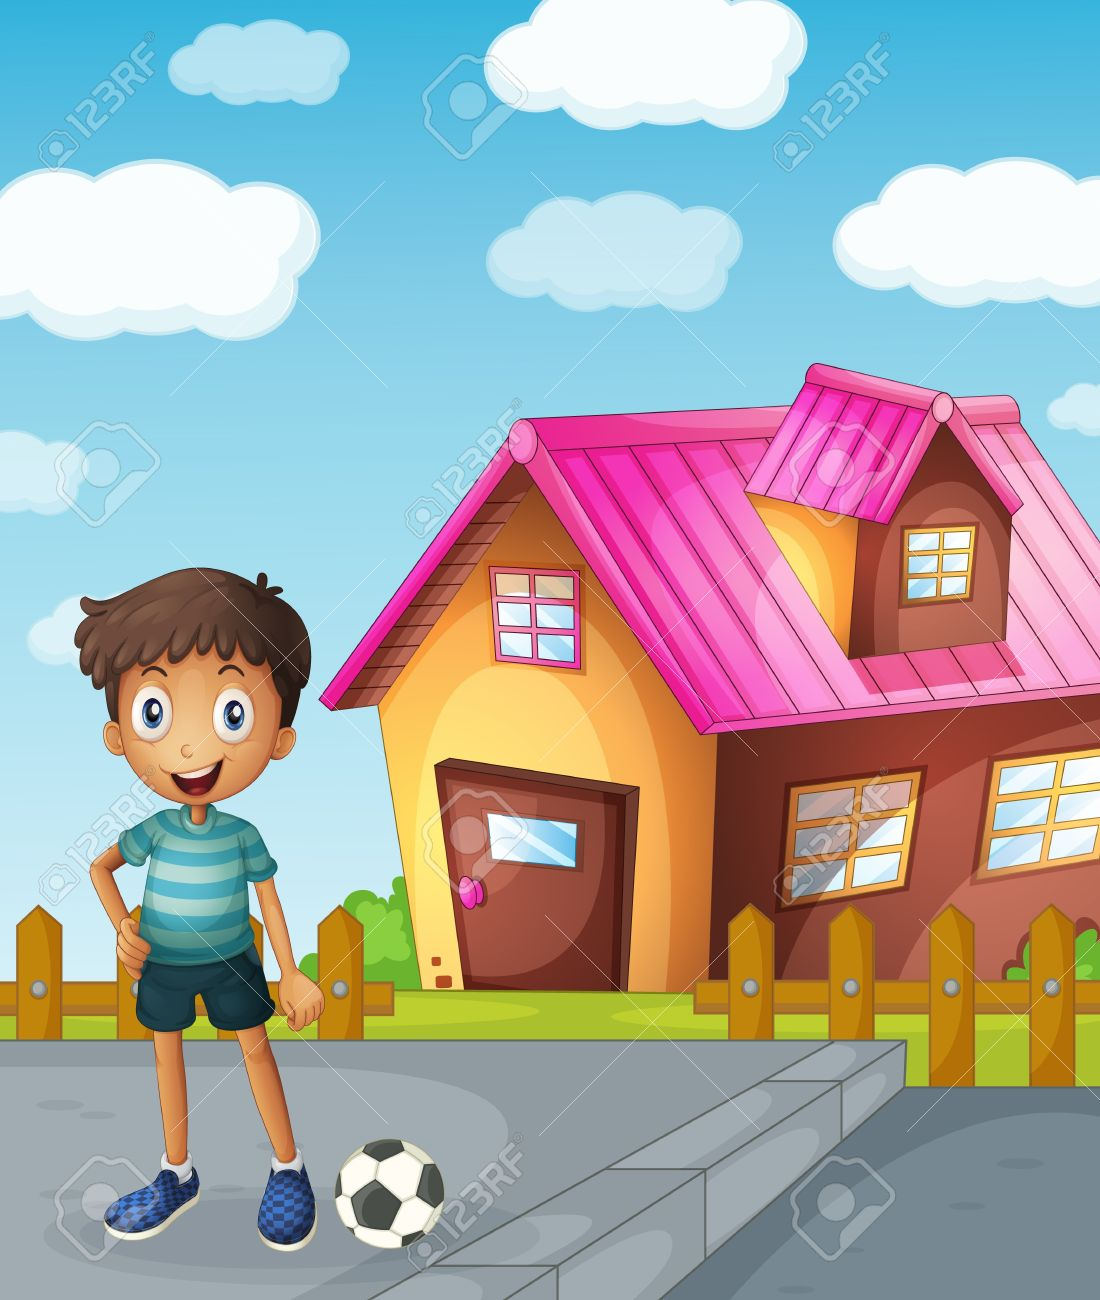 illustration of a boy, a football and a house Stock Vector - 15810450